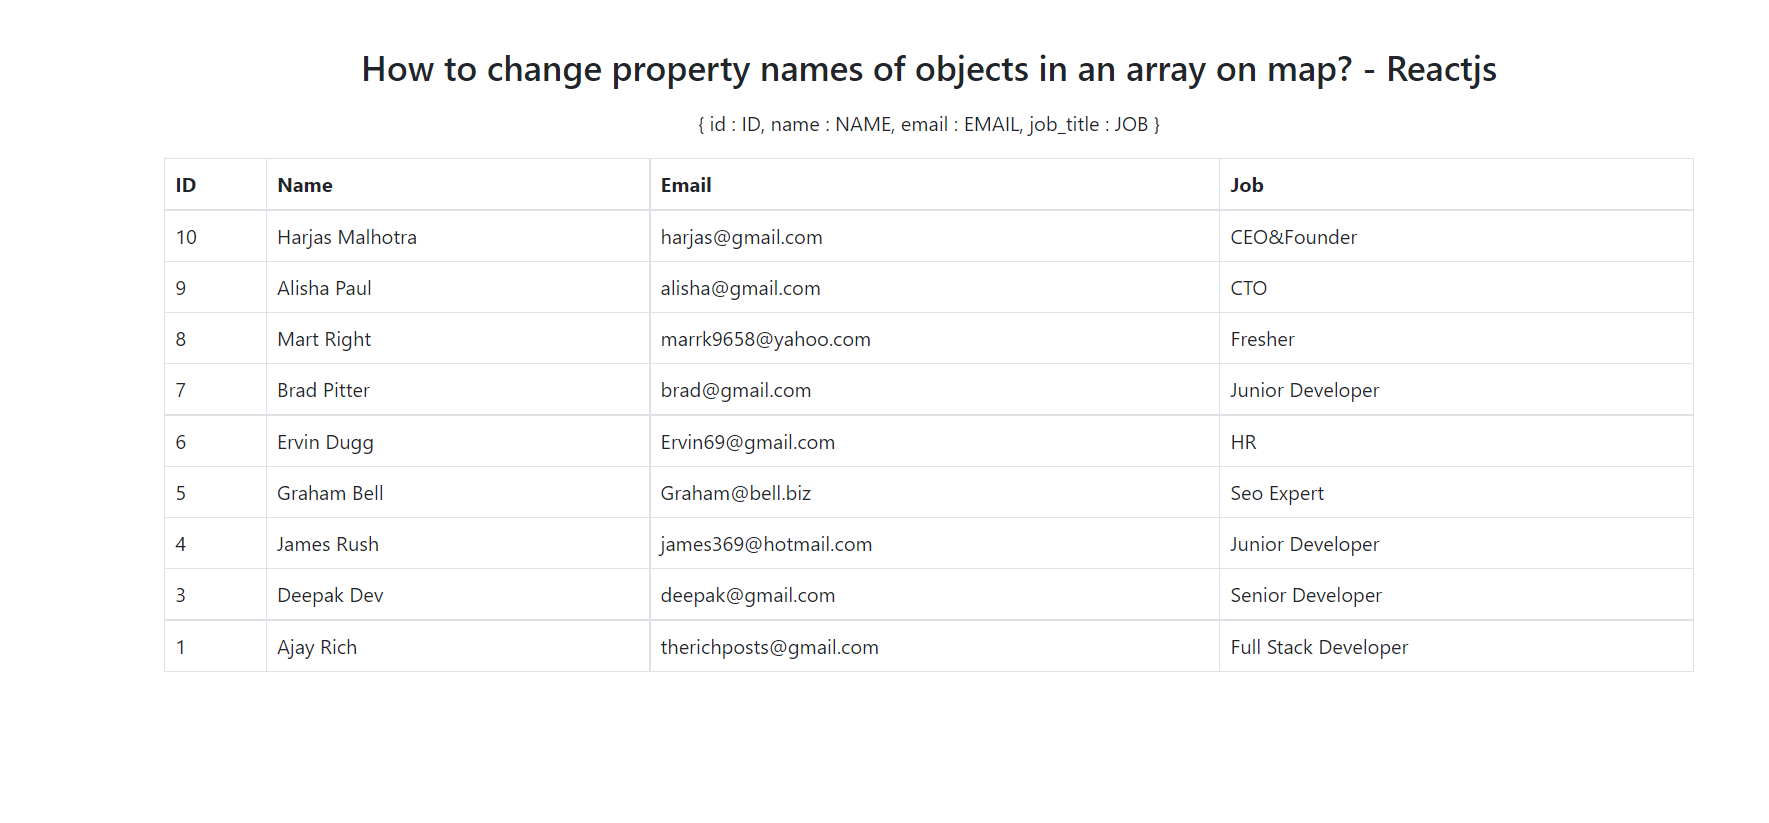 How to change property names of objects in an array on map? - Reactjs